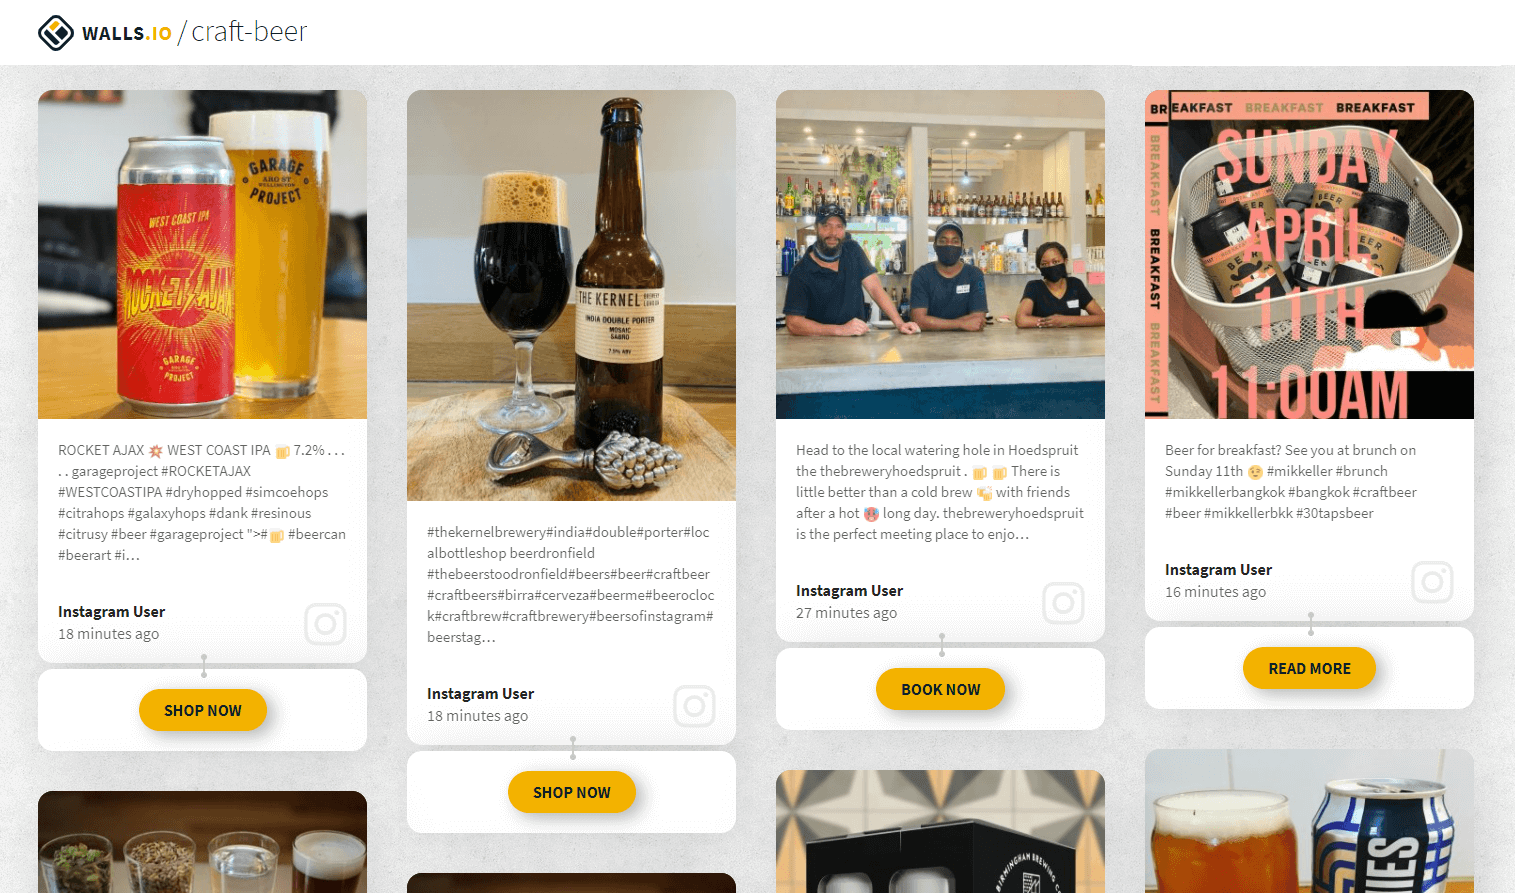 """A social media wall with different posts about craft beer. Two posts show a can and a glass full of beer and a """"Shop now"""" button. Another post promotes a craft beer event with a """"Book now"""" button."""